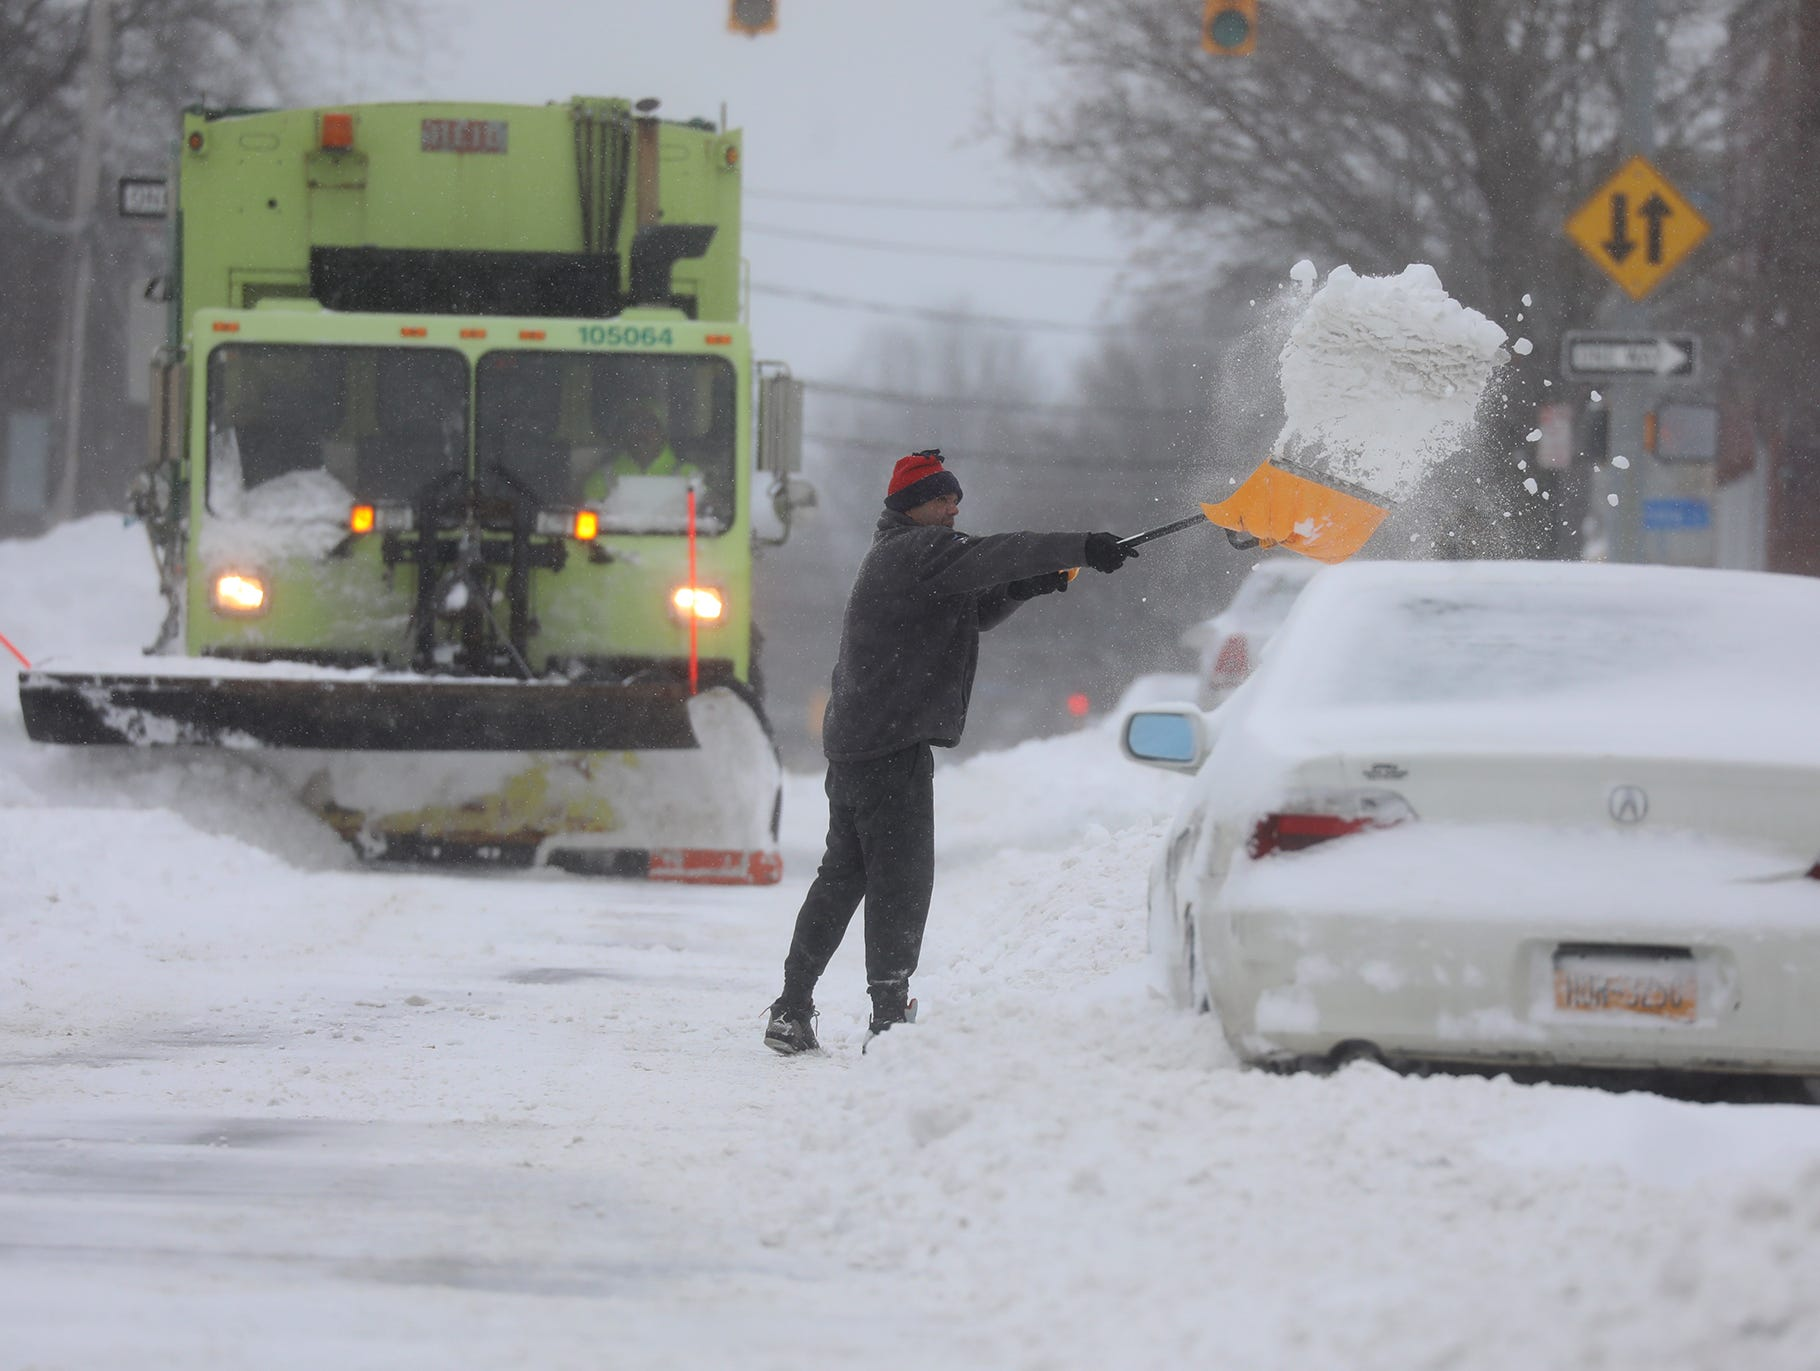 Over a foot of snow fell overnight, with advisories issued about unnecessary travel and cold temperatures.  Many people heeded the warnings and stayed home, Sunday, Jan. 20, 2019.  Benjamin Diaz shovels from his driveway on Smith Street as a plow comes down his street.